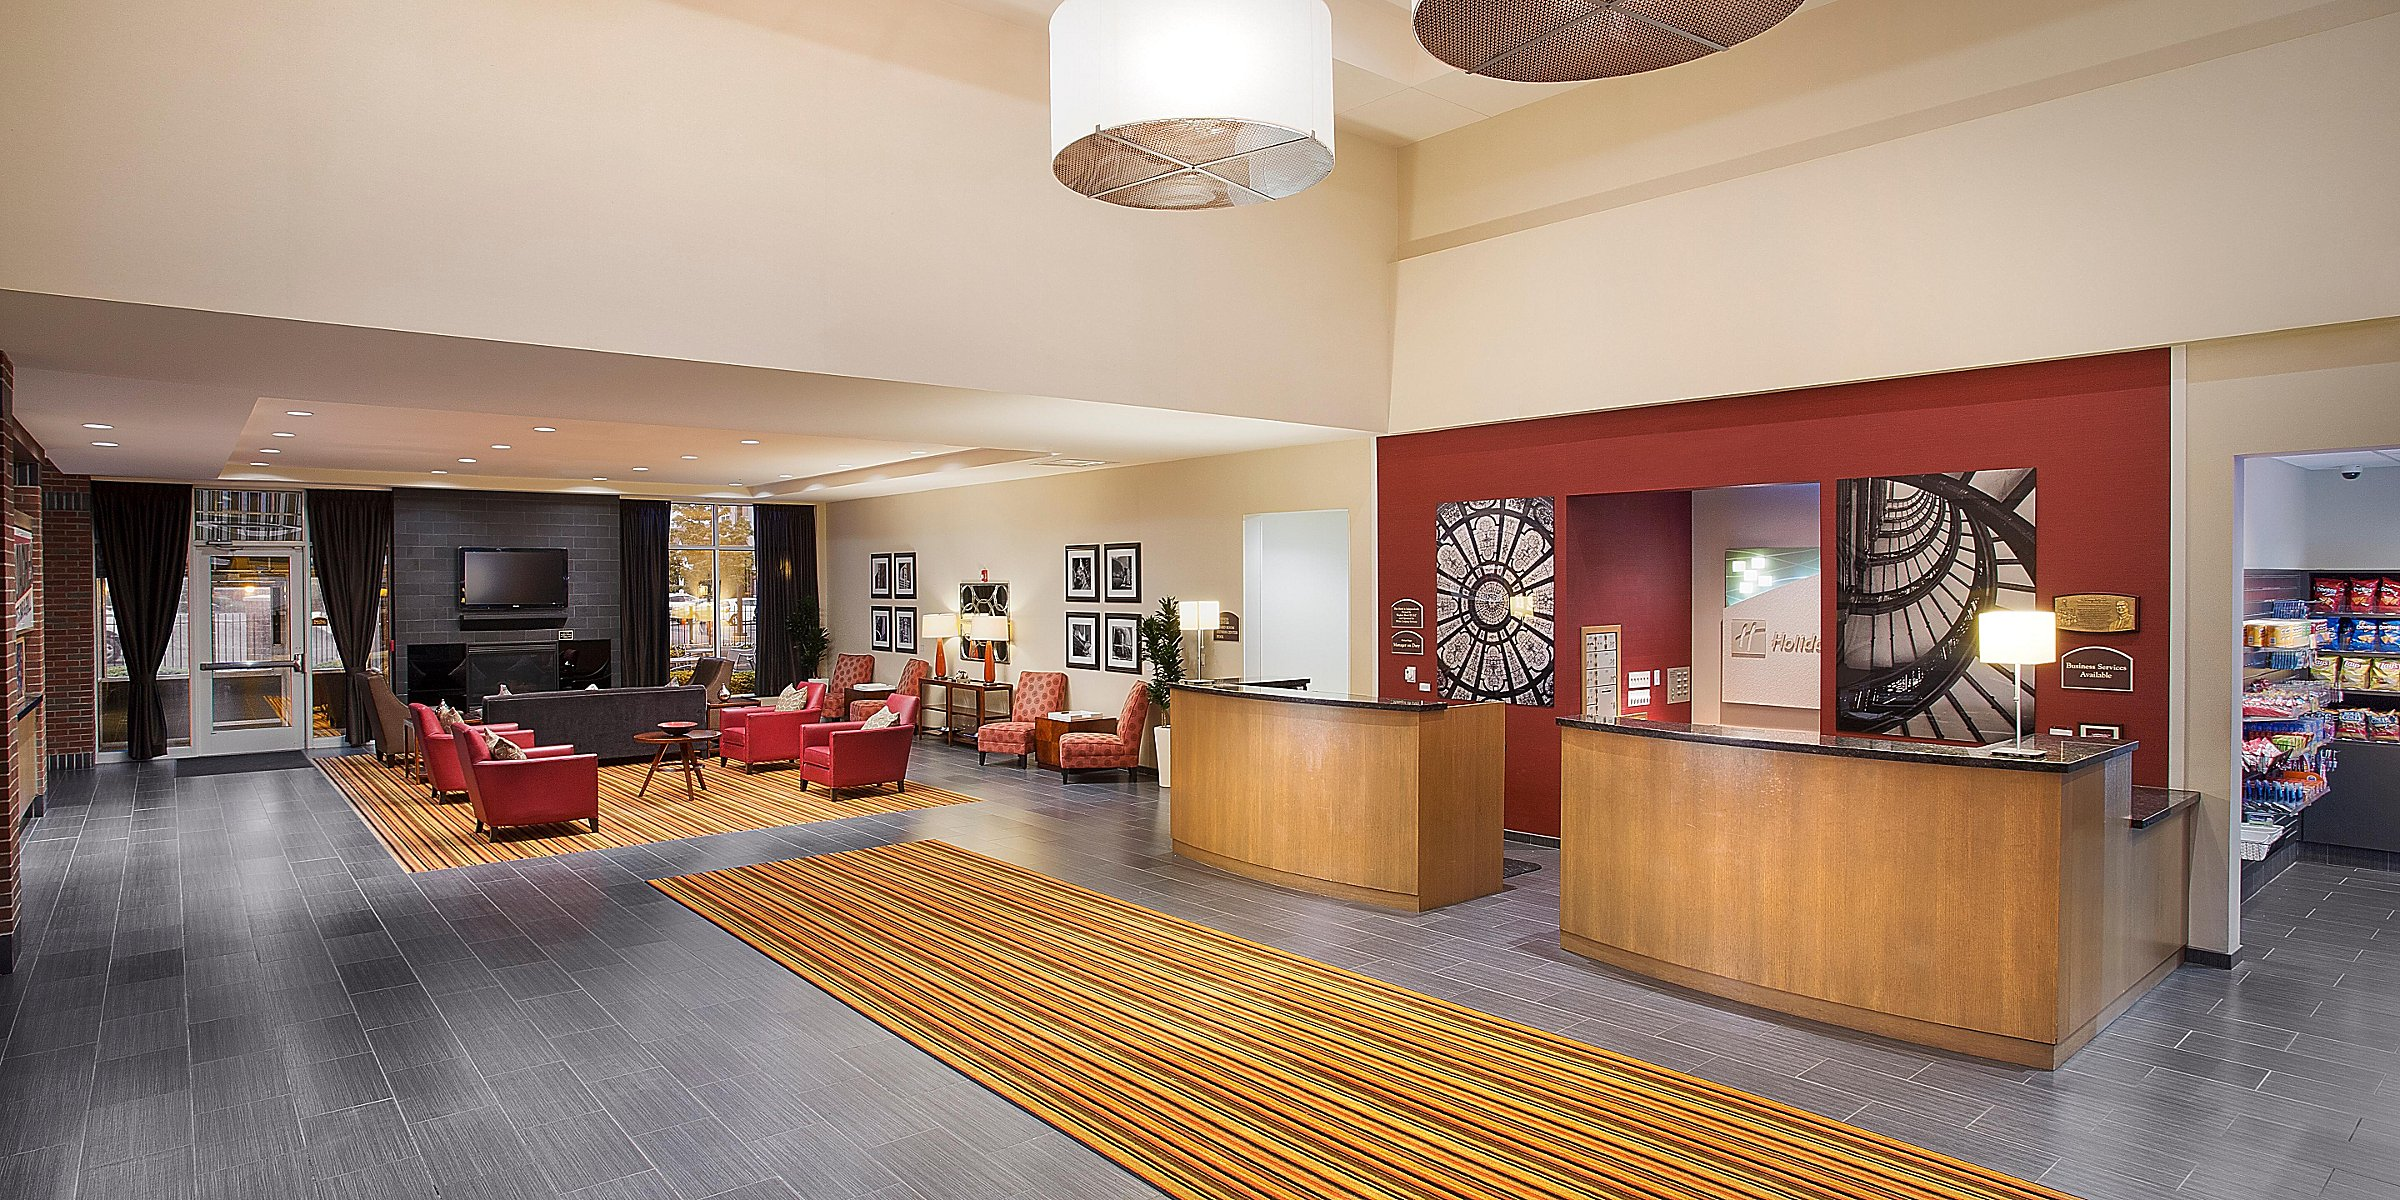 Chicago Airport Hotels >> Hotels Near Chicago Midway Airport Holiday Inn Chicago